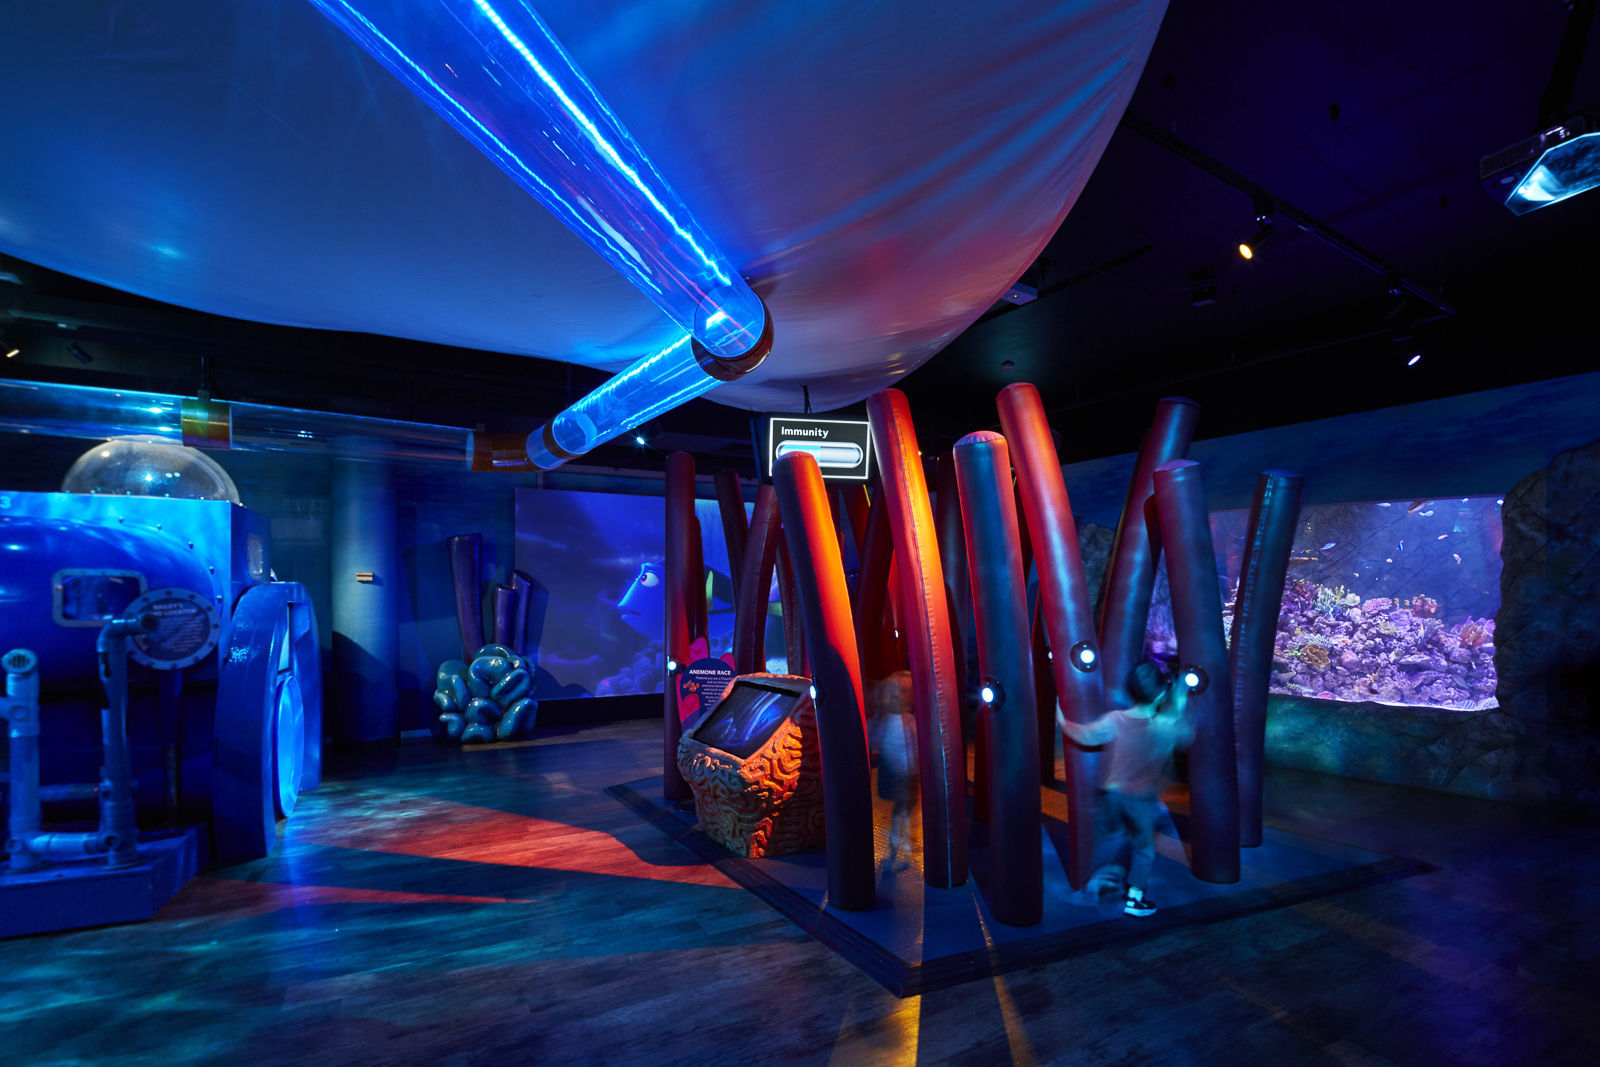 Finding Dory Exhibition Image 7